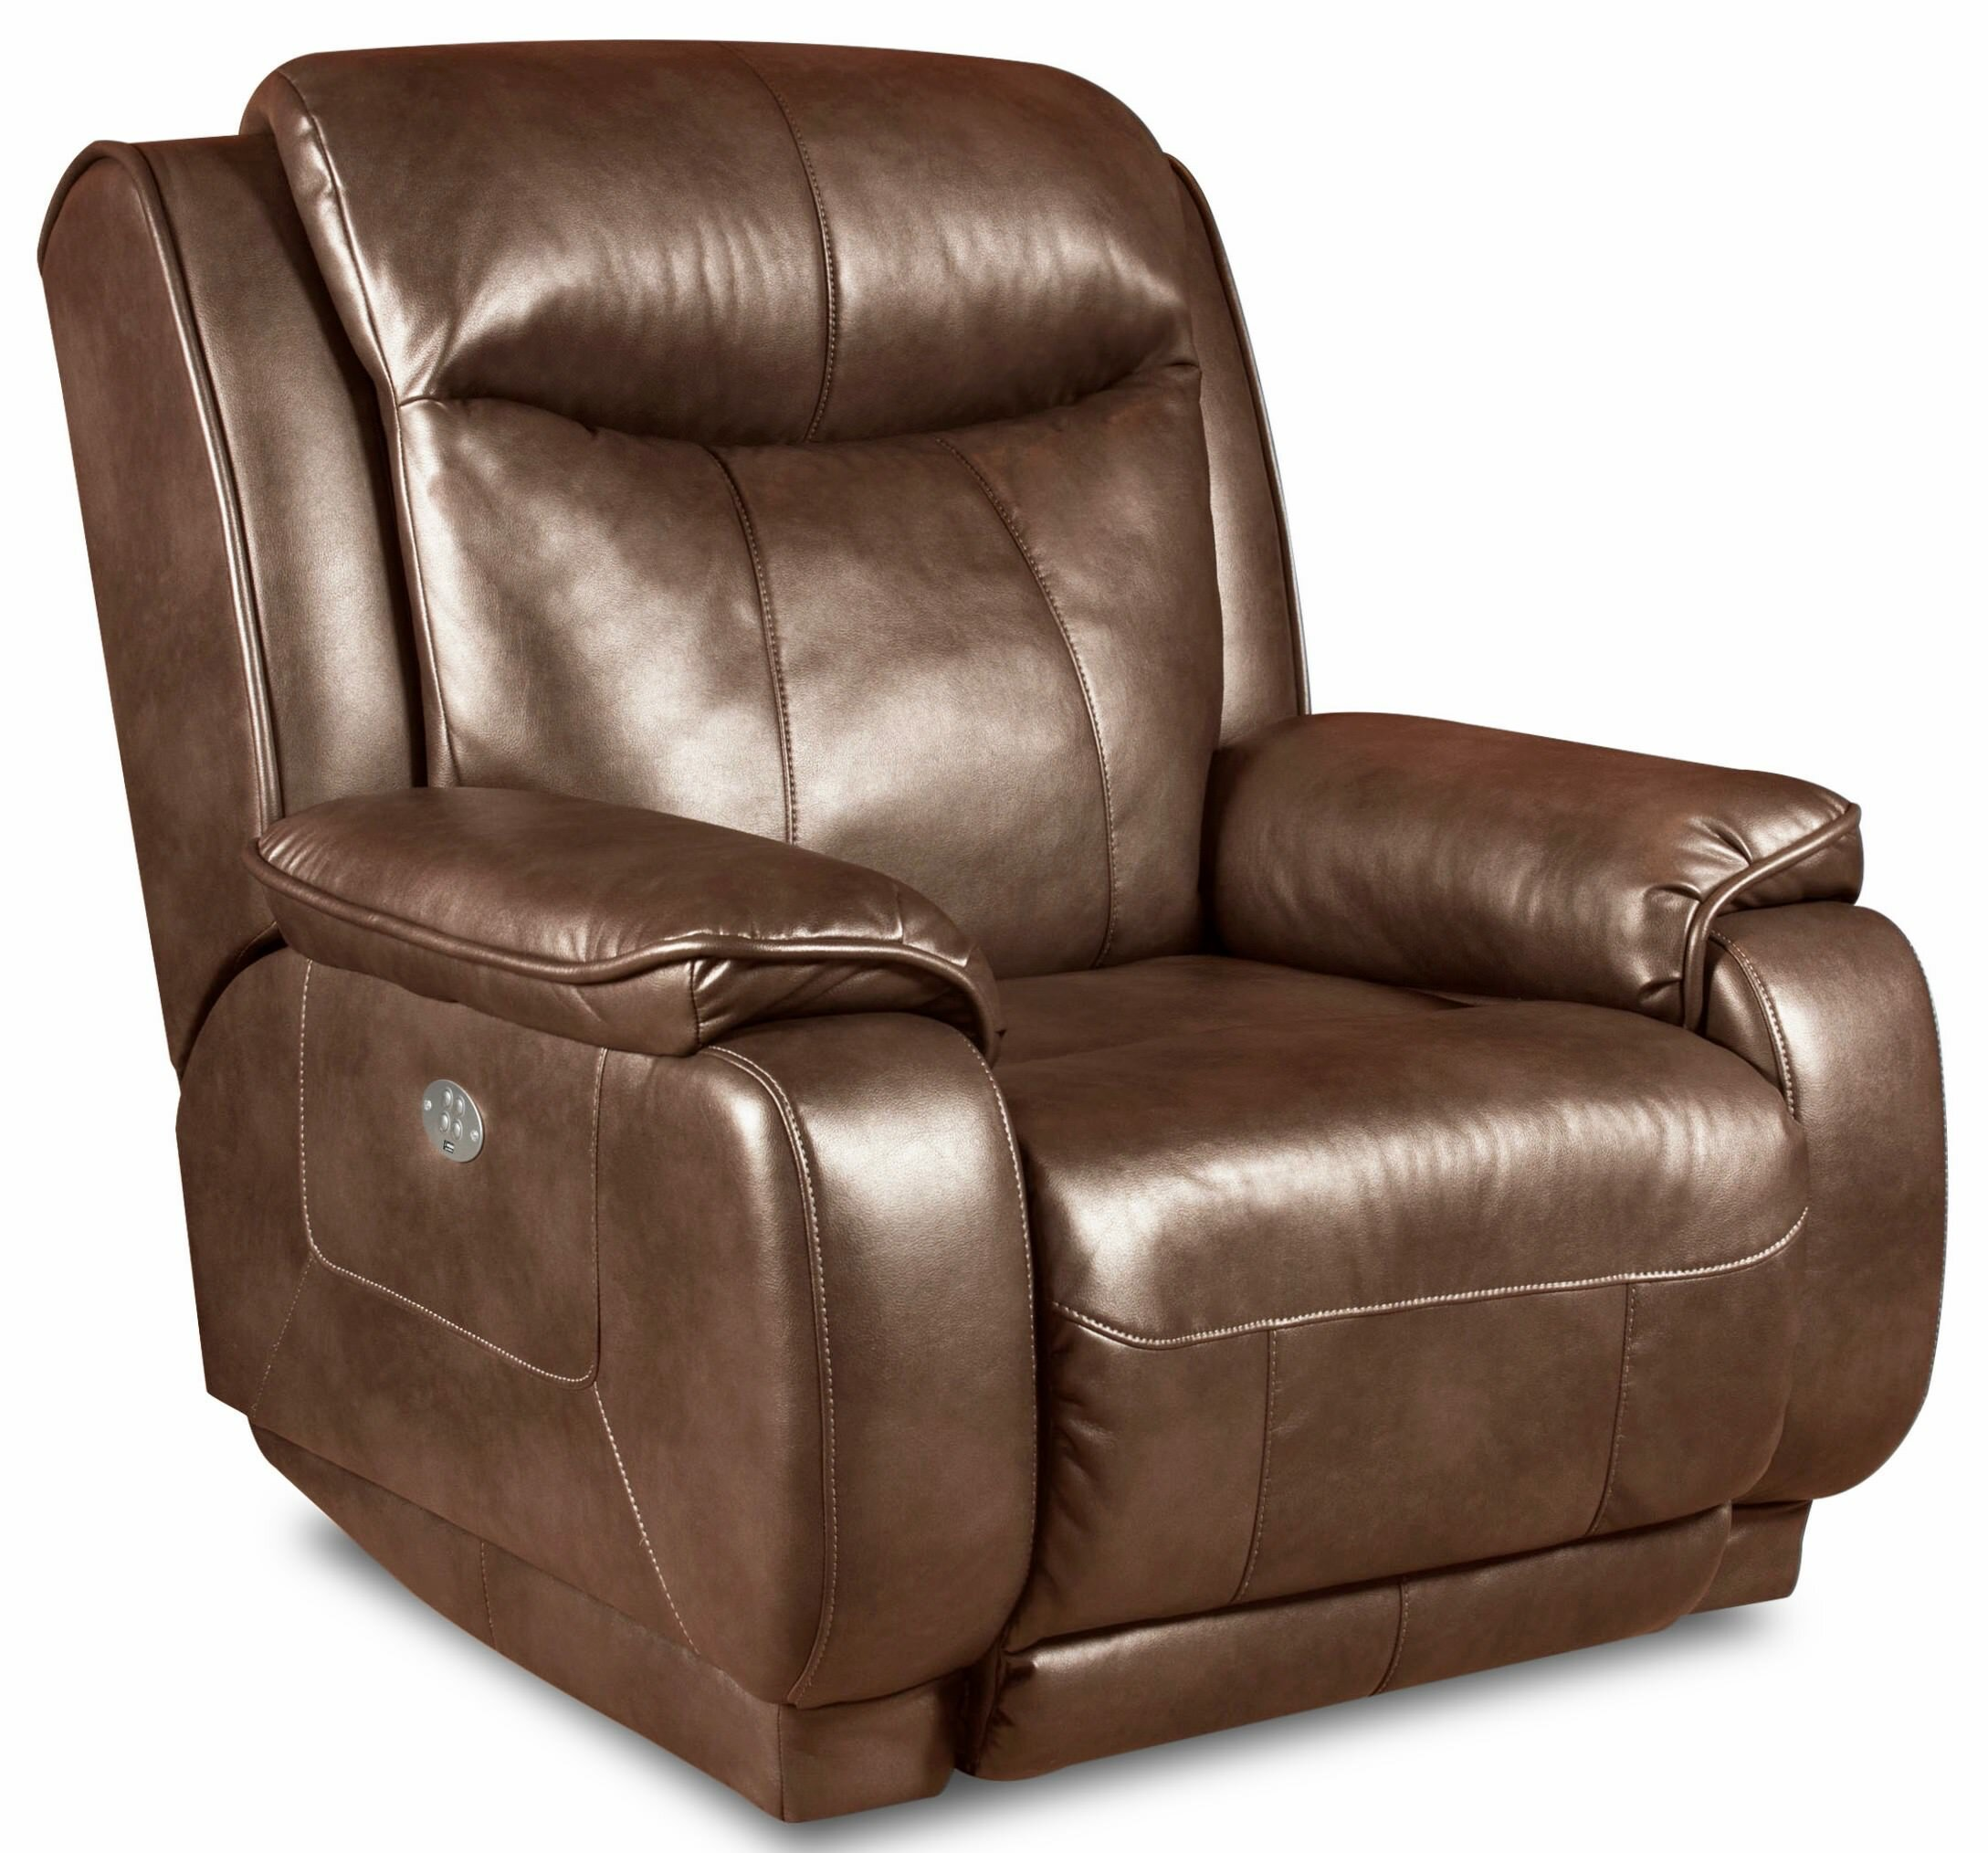 Southern Motion Velocity Power Recliner Wayfair